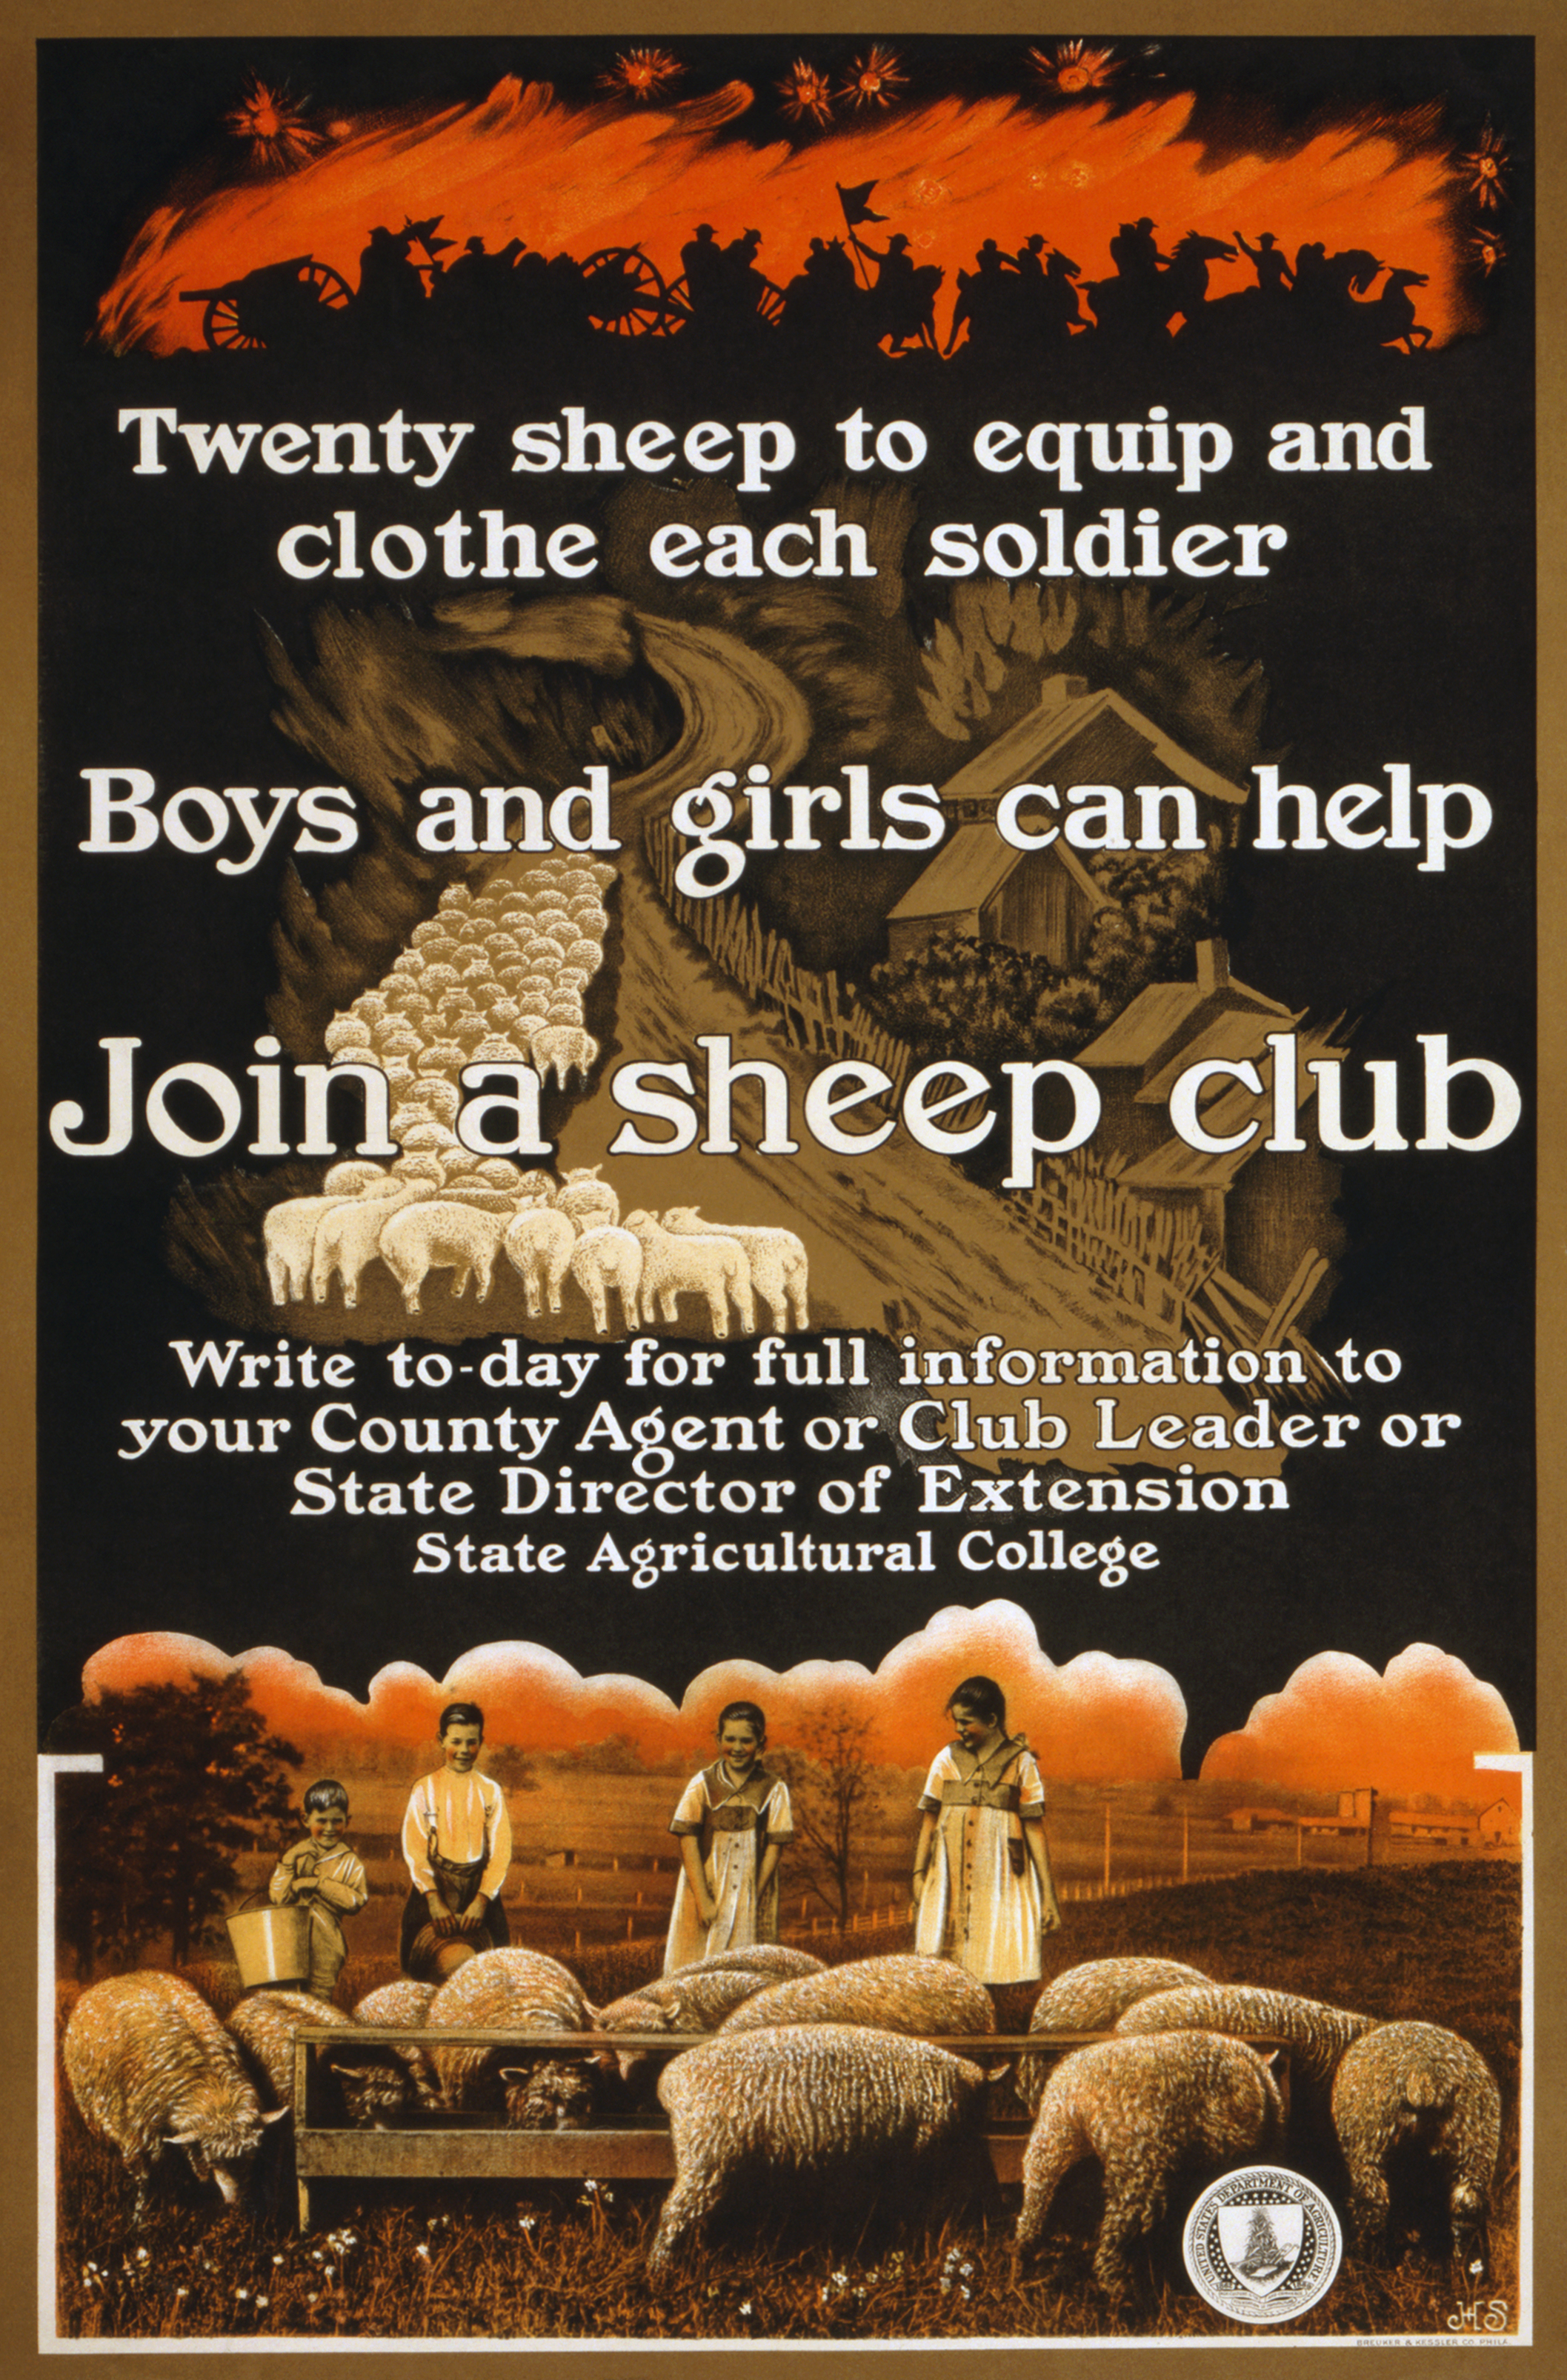 A World War I-era poster sponsored by the United States Department of Agriculture encouraging children to raise sheep to provide needed war supplies.